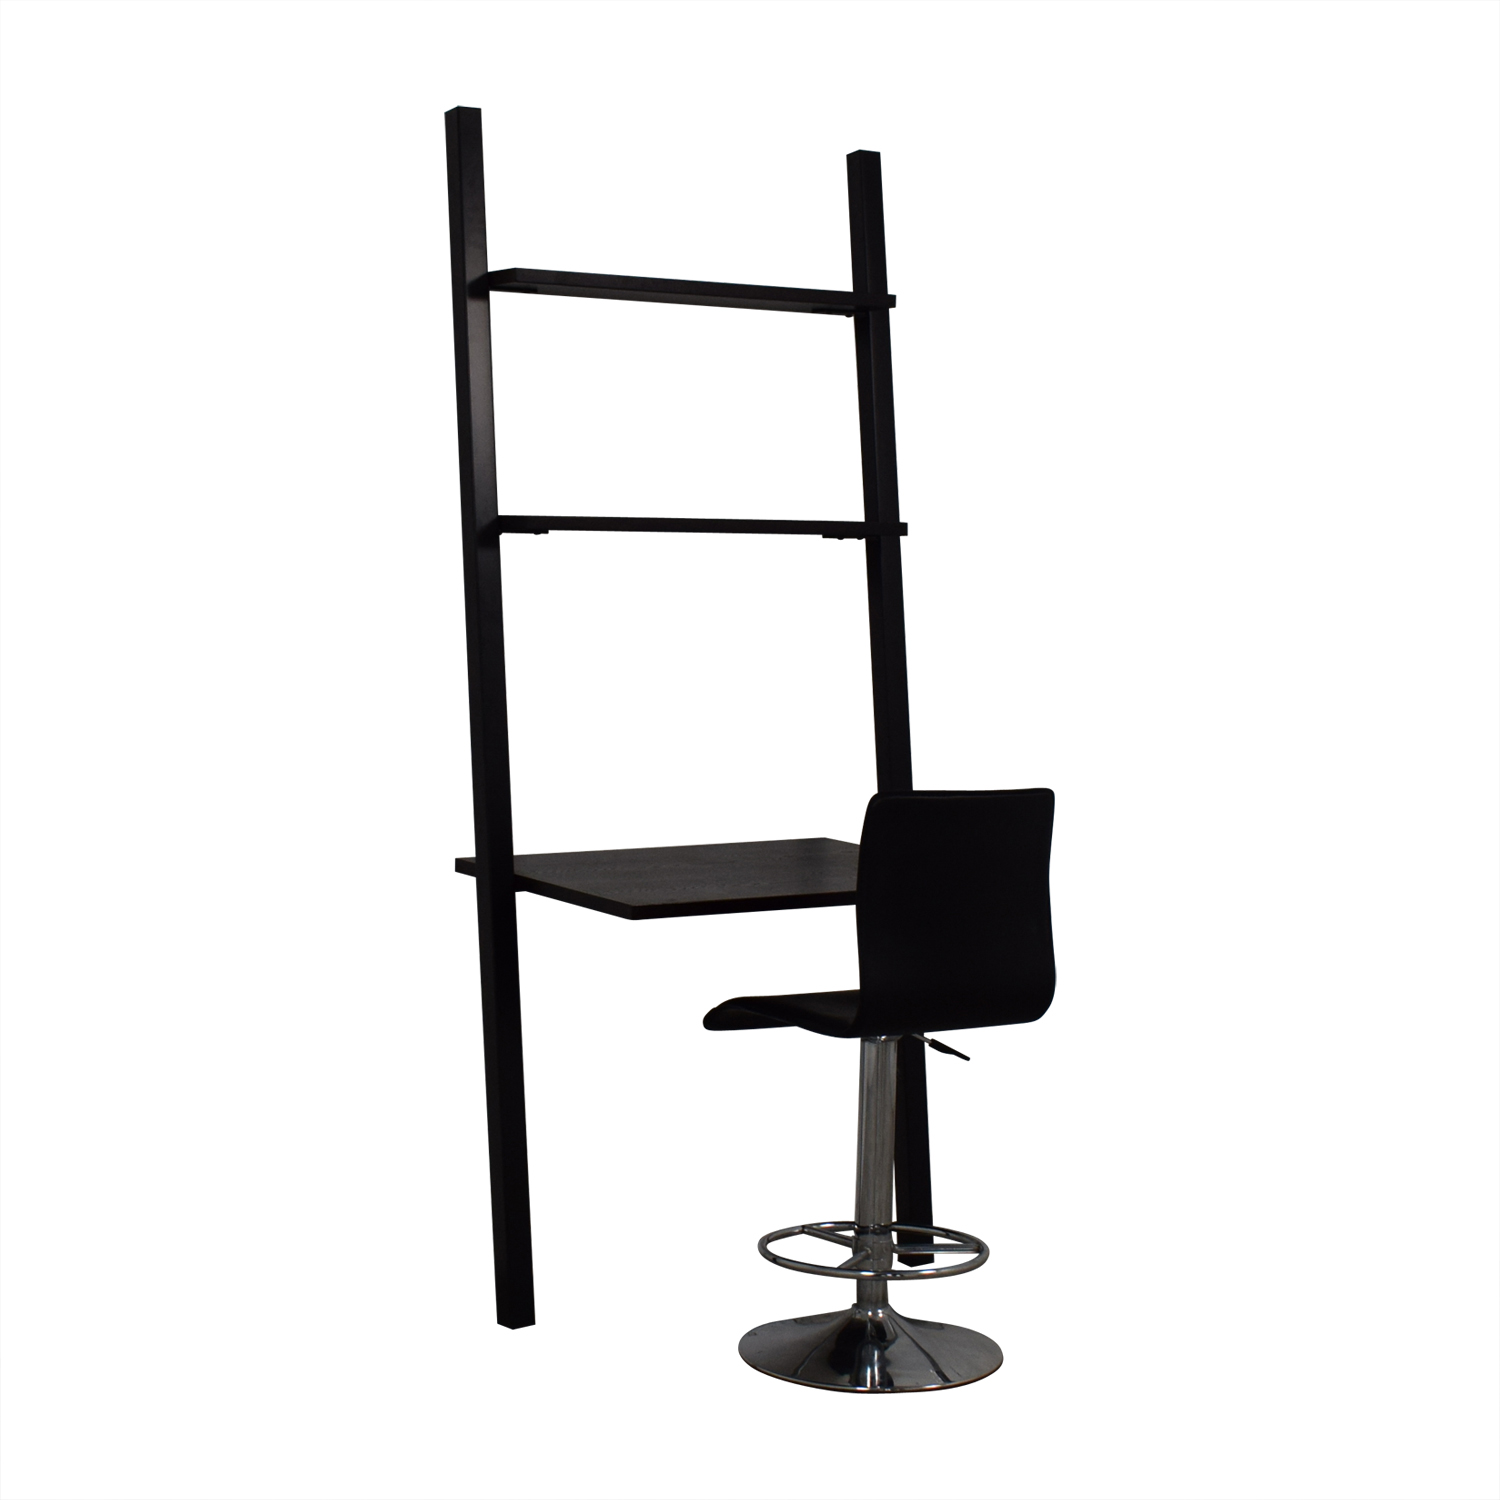 The Door Store The Door Store Ladder Shelf Desk with Modern Black Chair brown